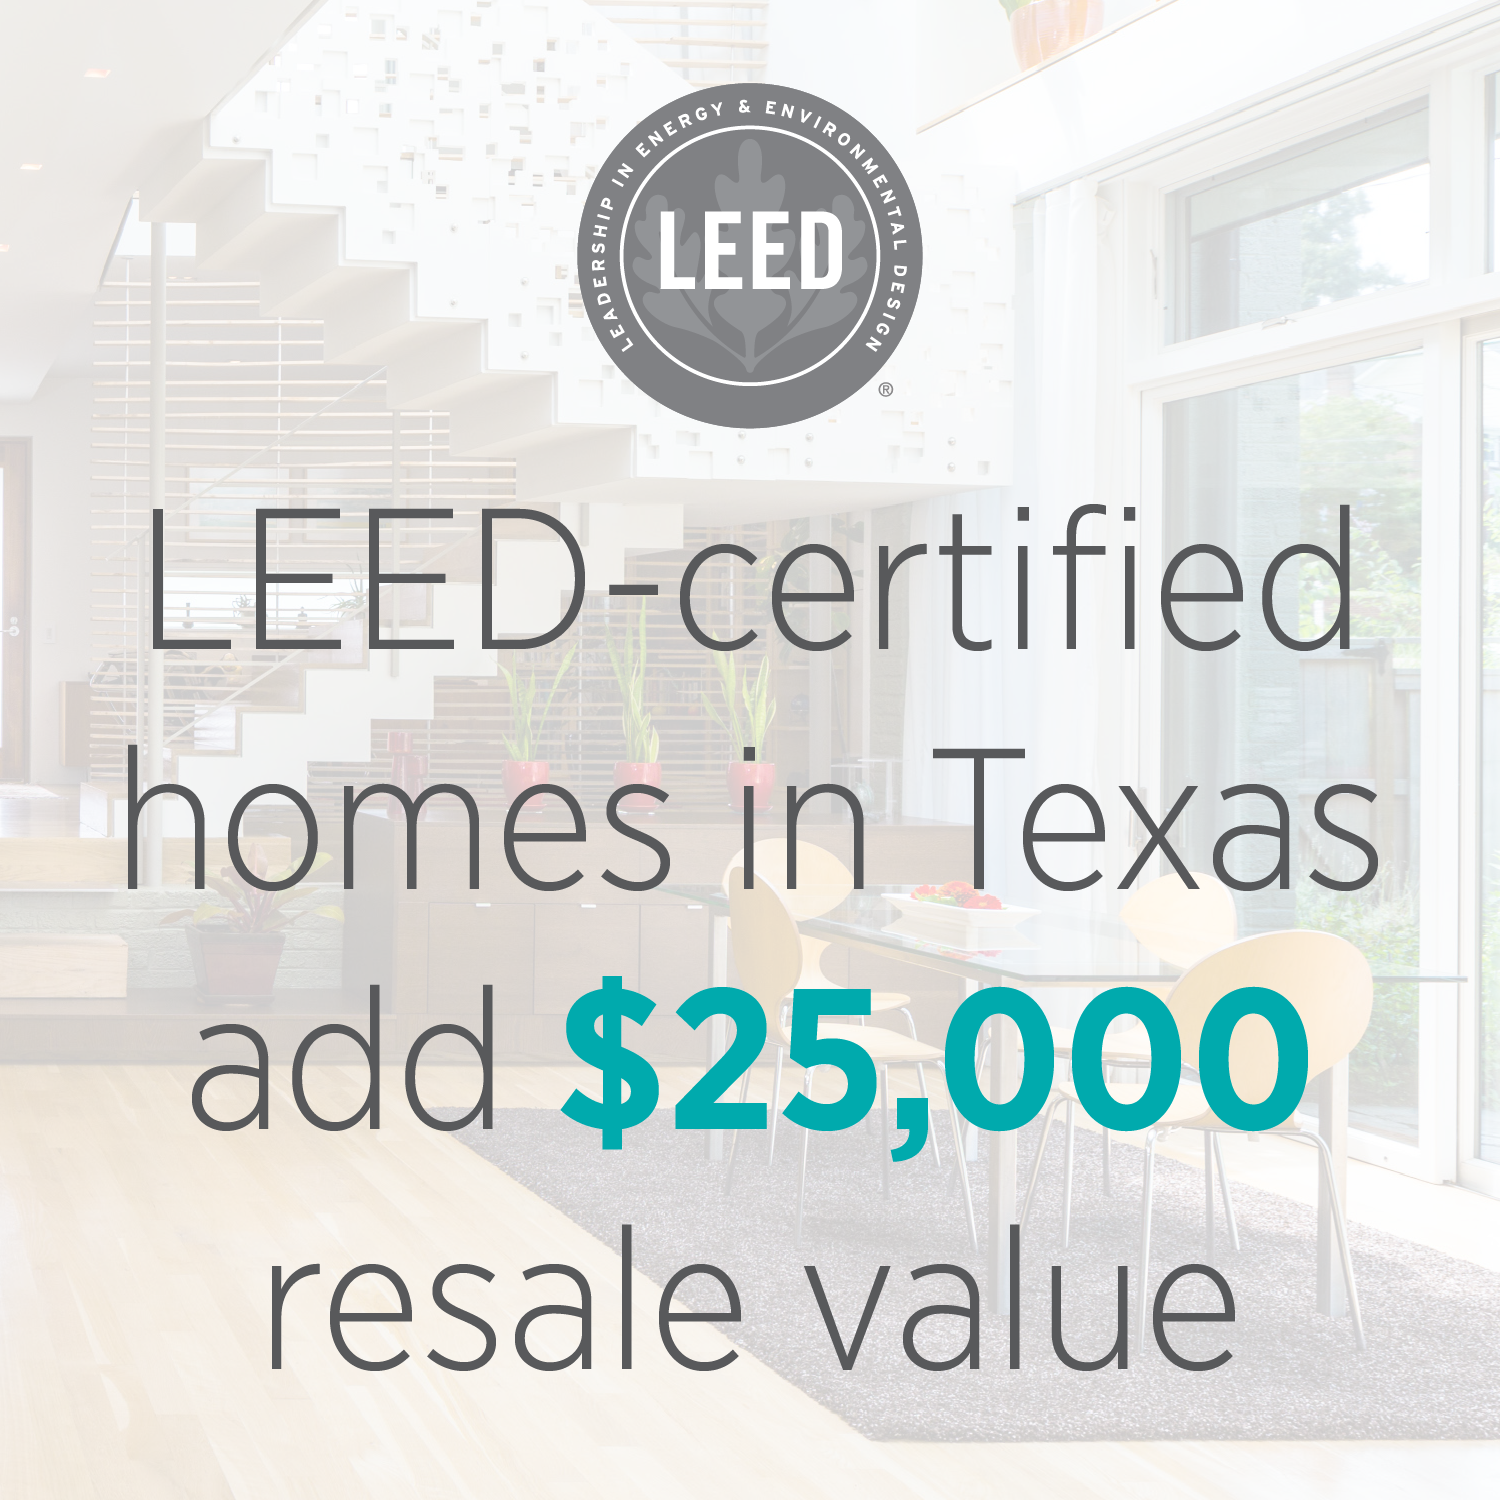 LEED homes in Texas offer $25,000 more in resale value